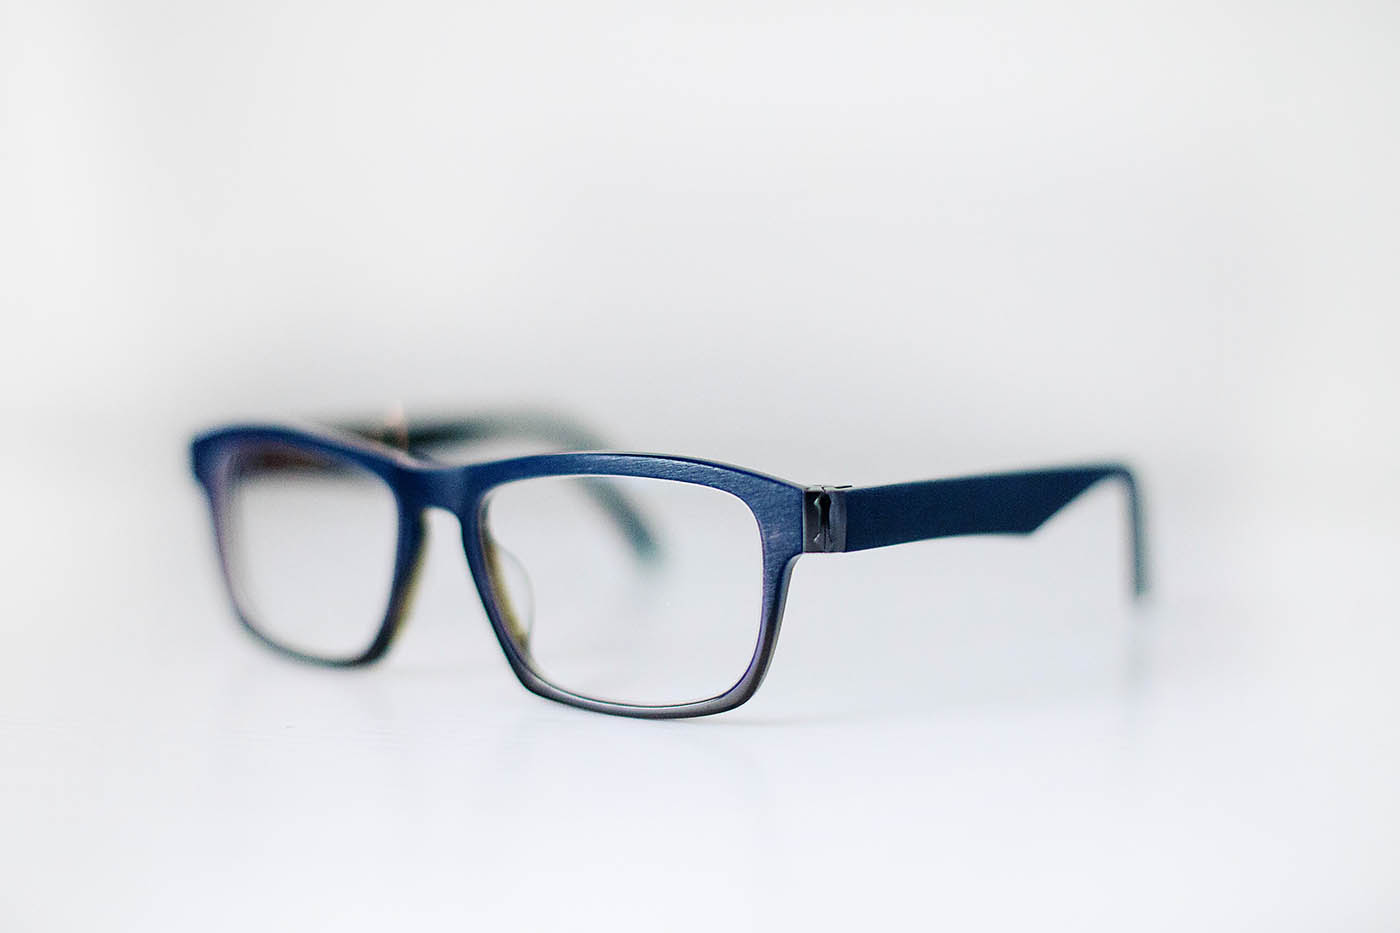 Pearle Vision Glasses Prices - Best Glasses Cnapracticetesting.Com 2018